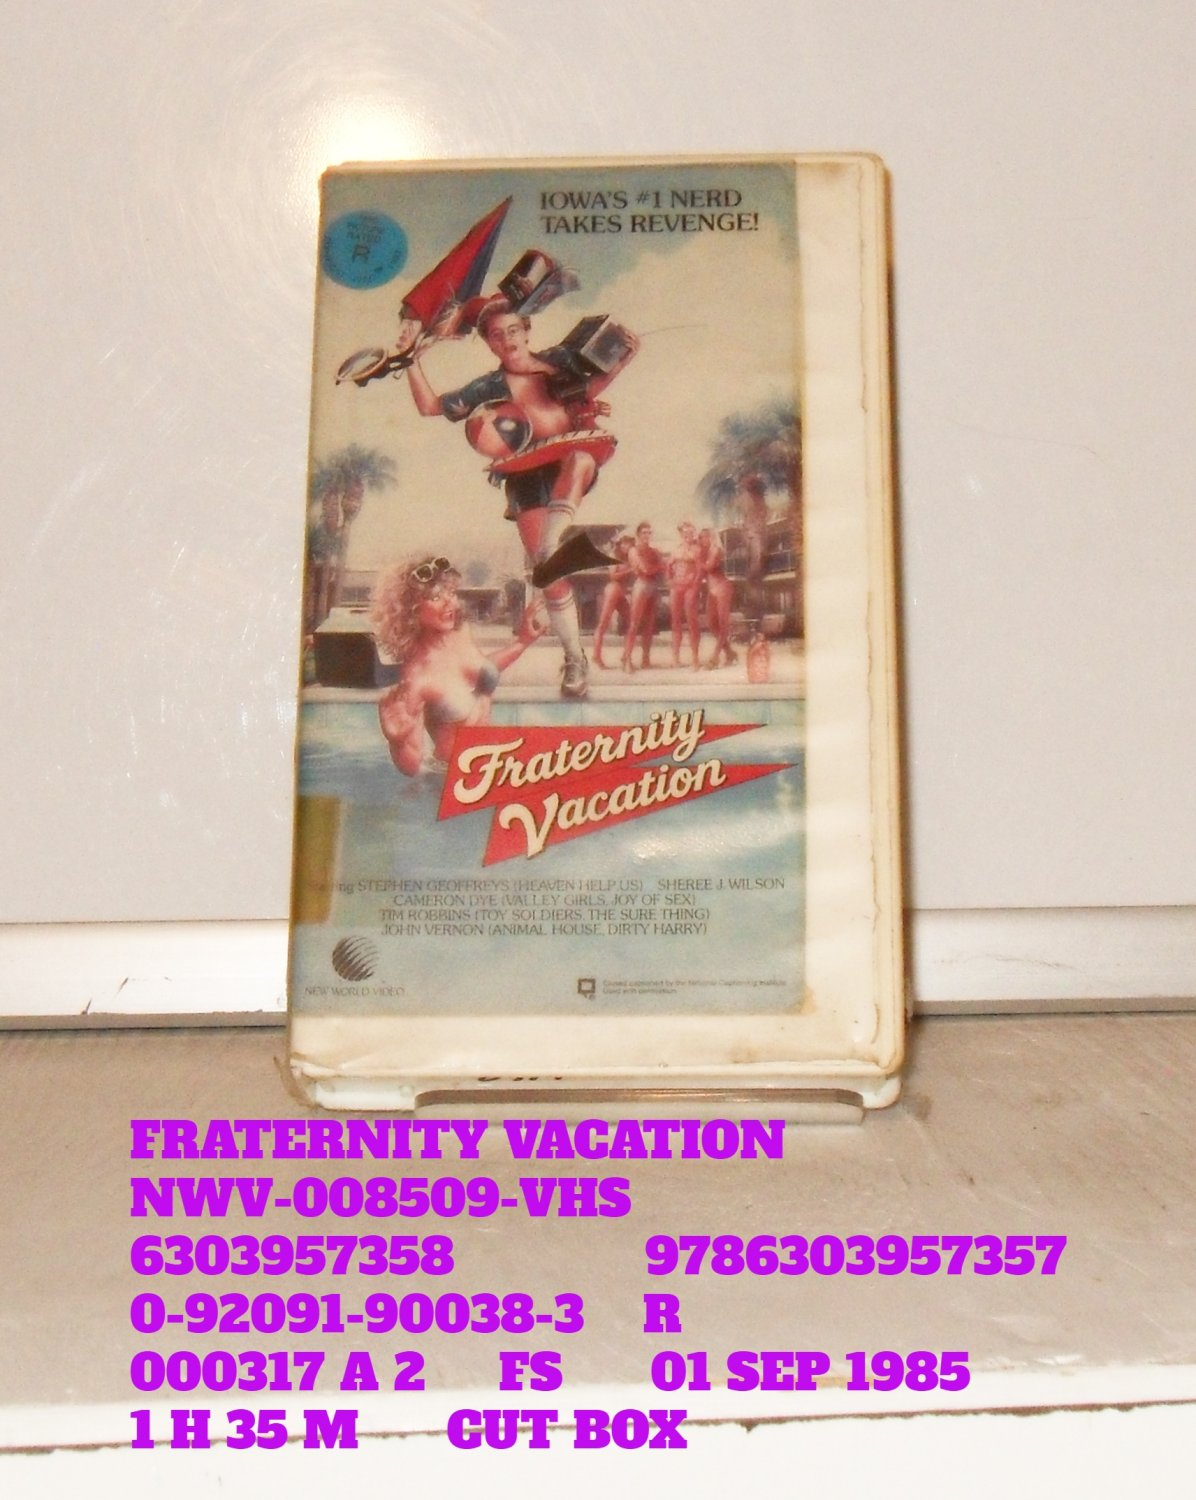 VHS - FRATERNITY VACATION